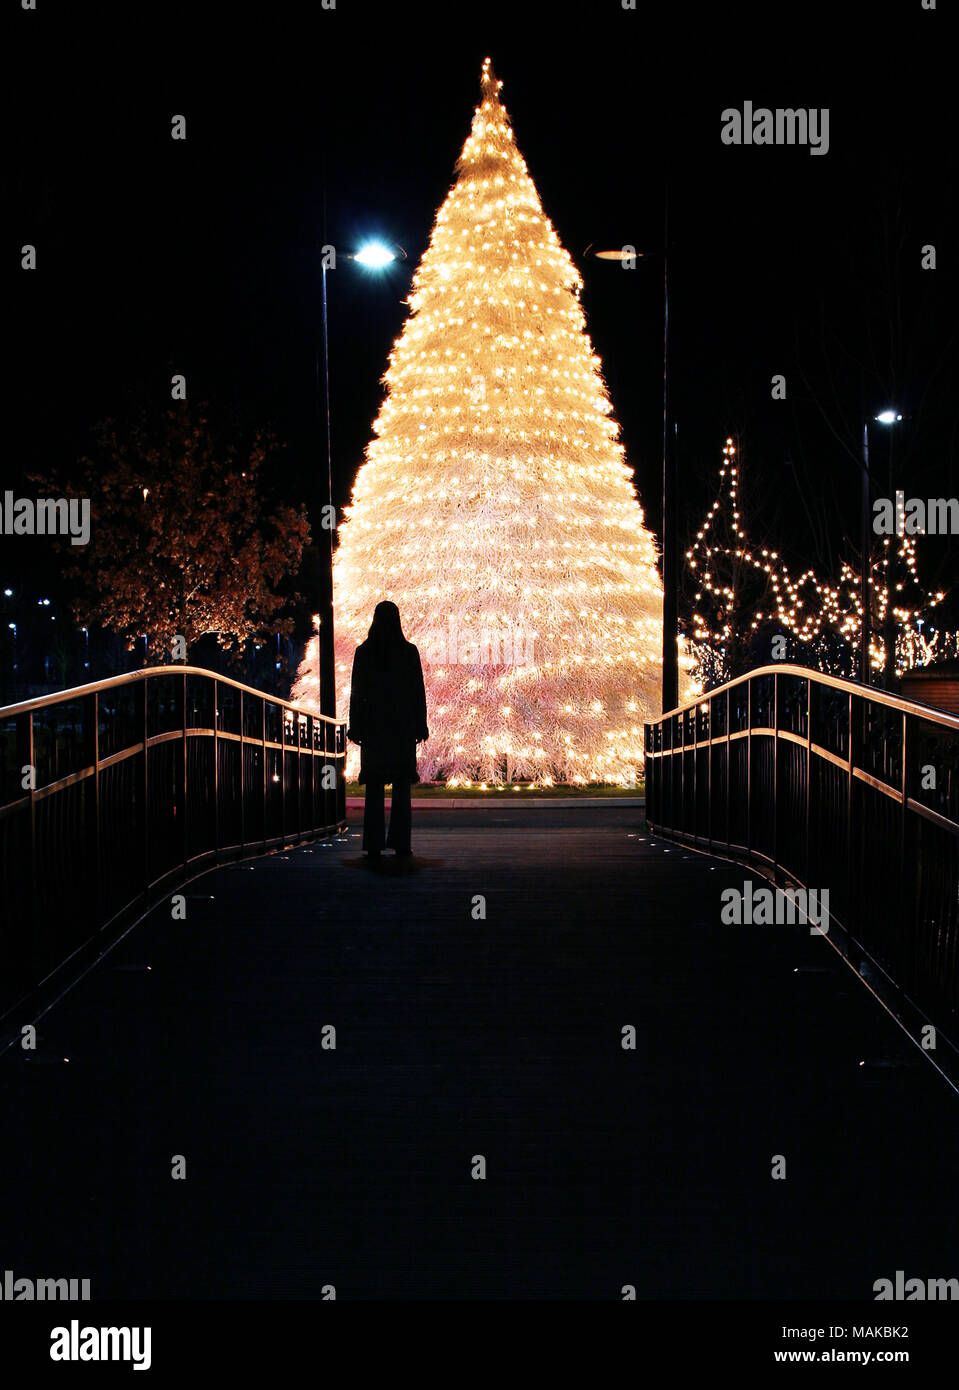 Lonely Christmas.Lonely Christmas Figure Stock Photos Lonely Christmas